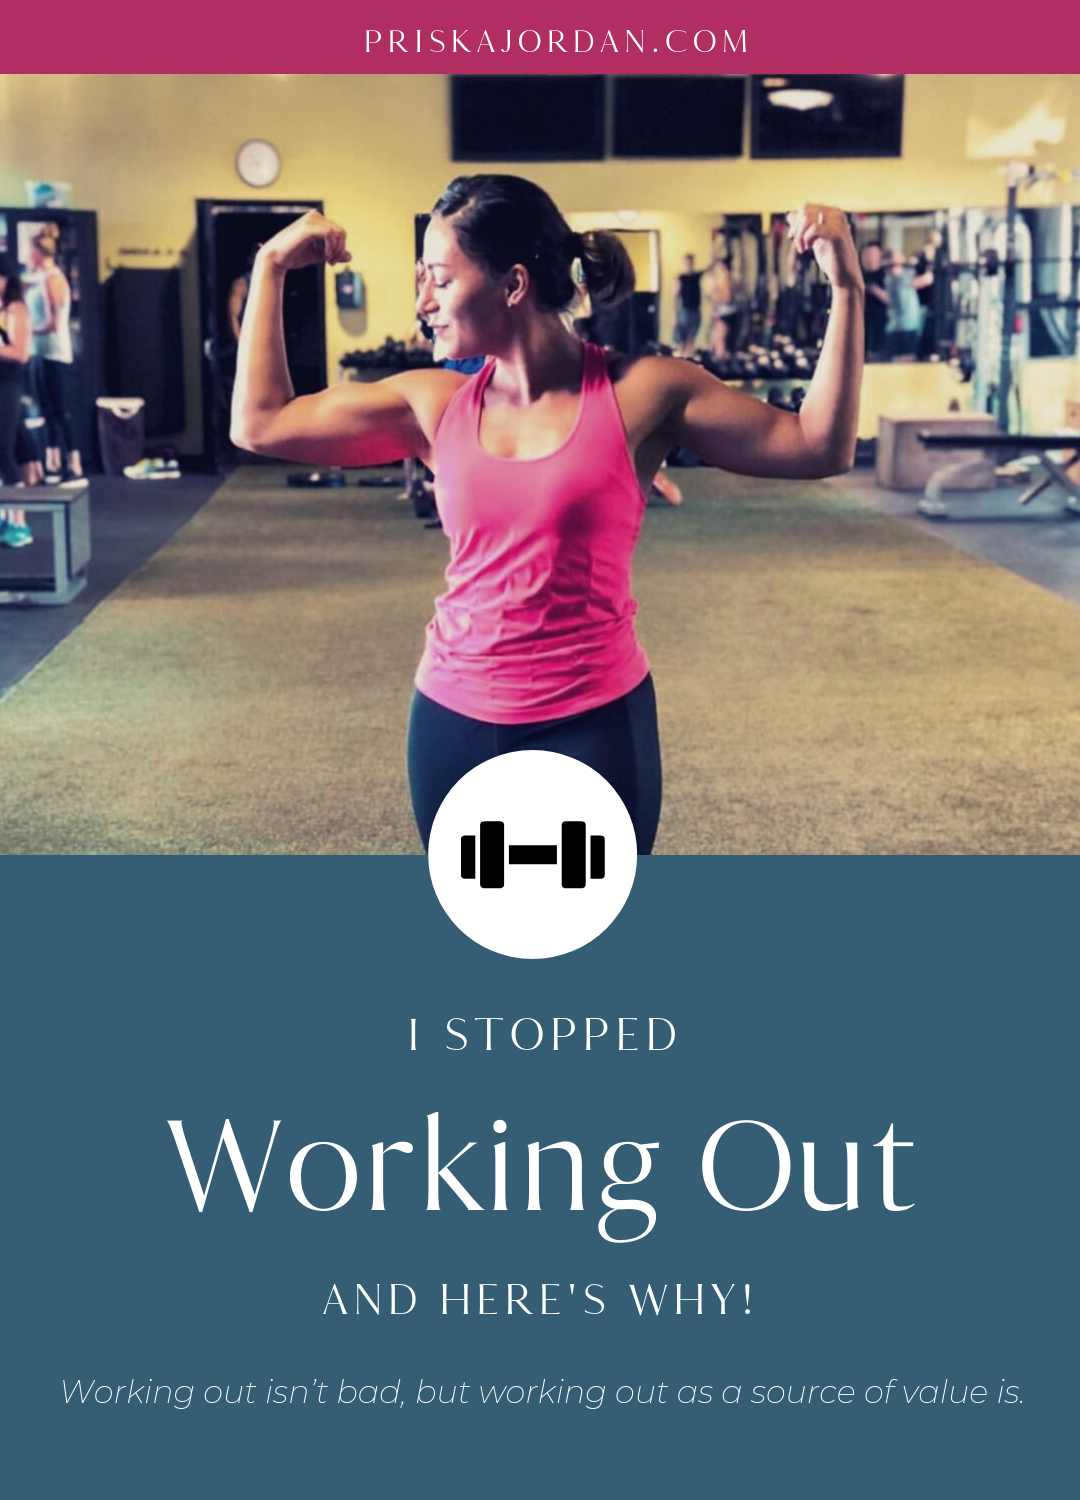 I stopped working out and here's why | Body Image, Orthorexia, Healthy Addiction, Mental Freedom | PriskaJordan.com | Christian blog